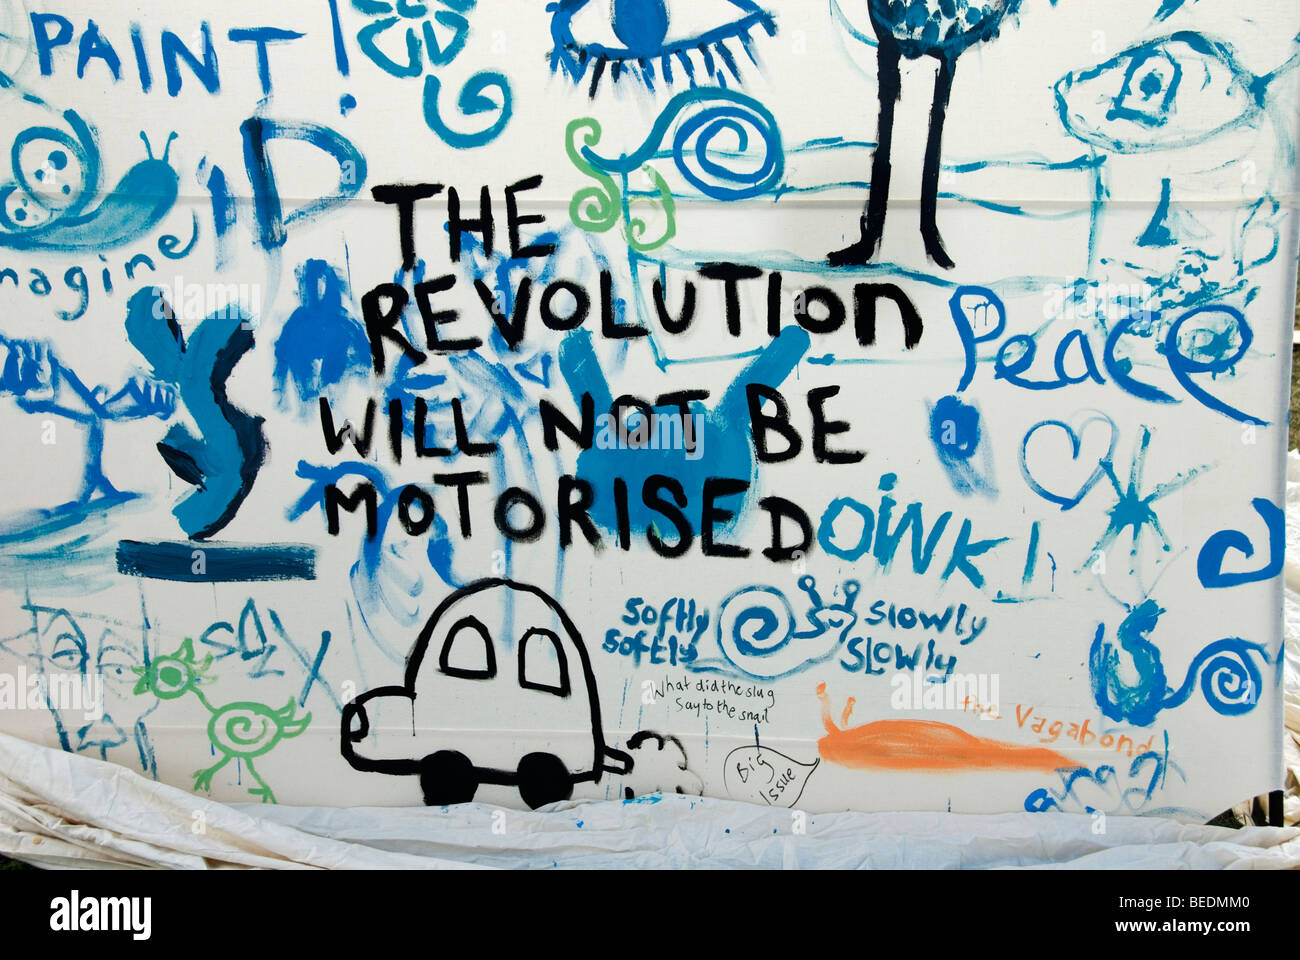 Climate Camp 2009 Blackheath. Writing on the wall - The revolution will not be motorised. - Stock Image